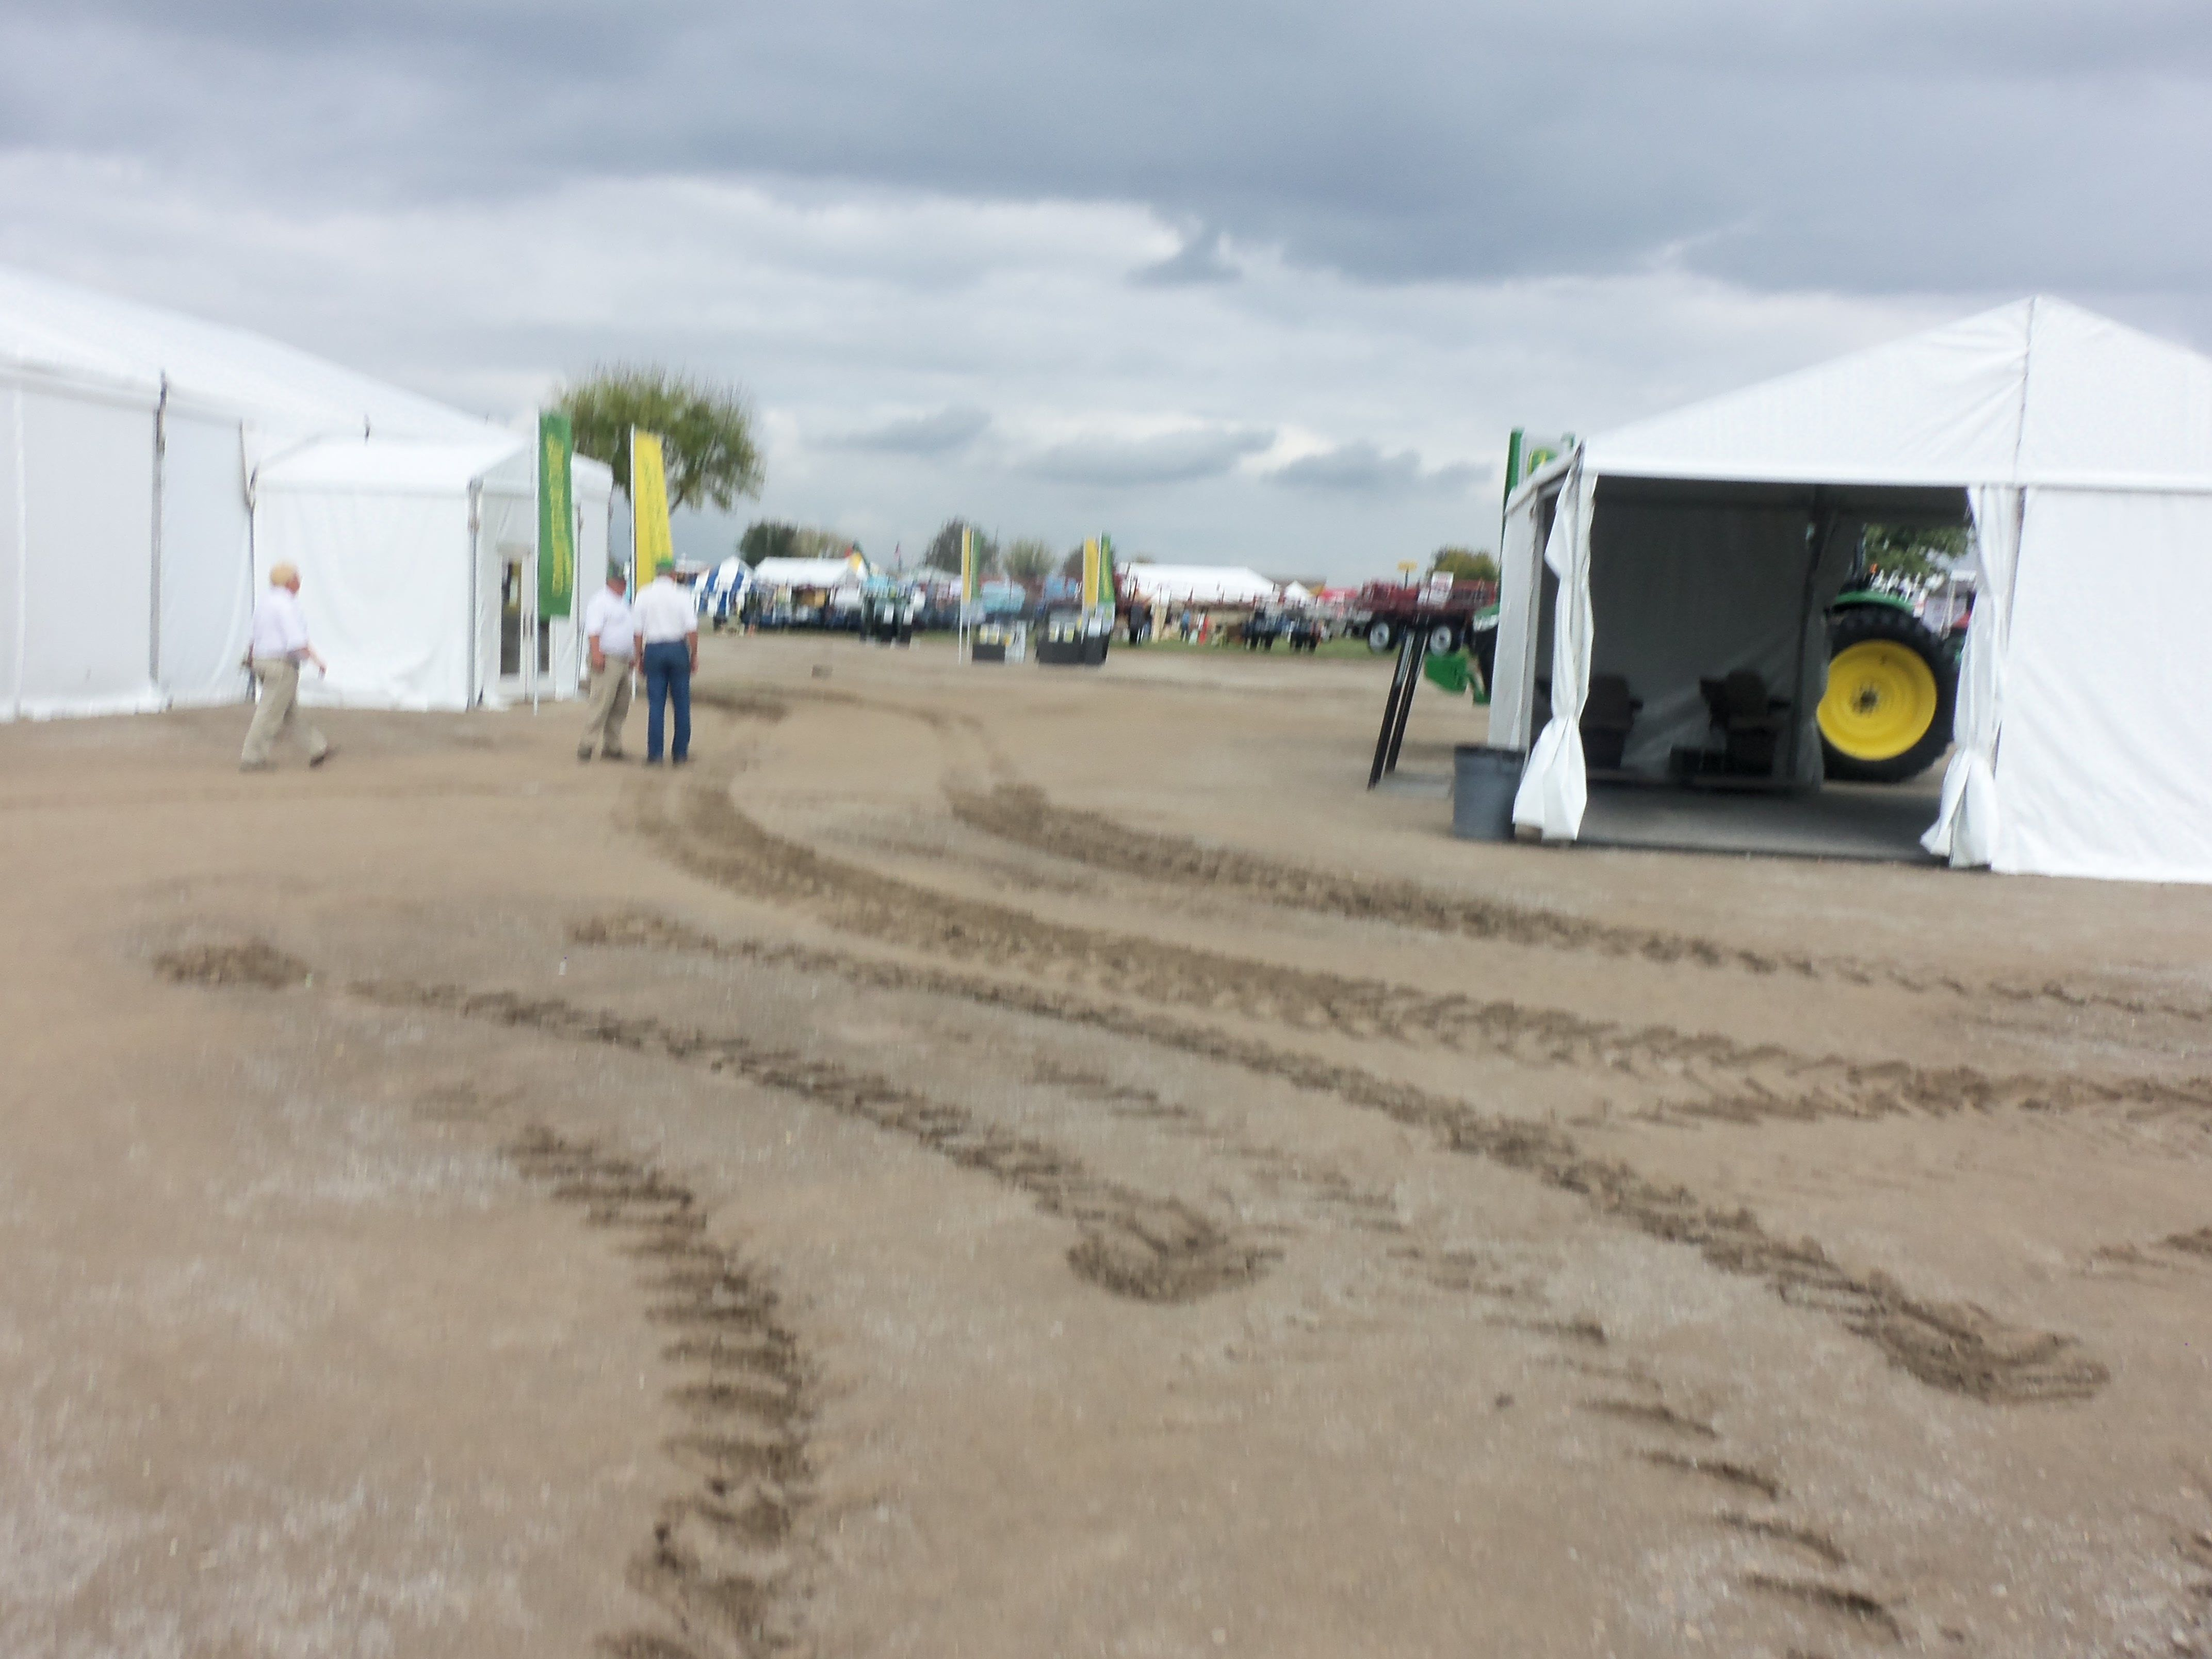 Empty John Deere exhibit at the conclusion of the 2013 Ohio Farm Science Review